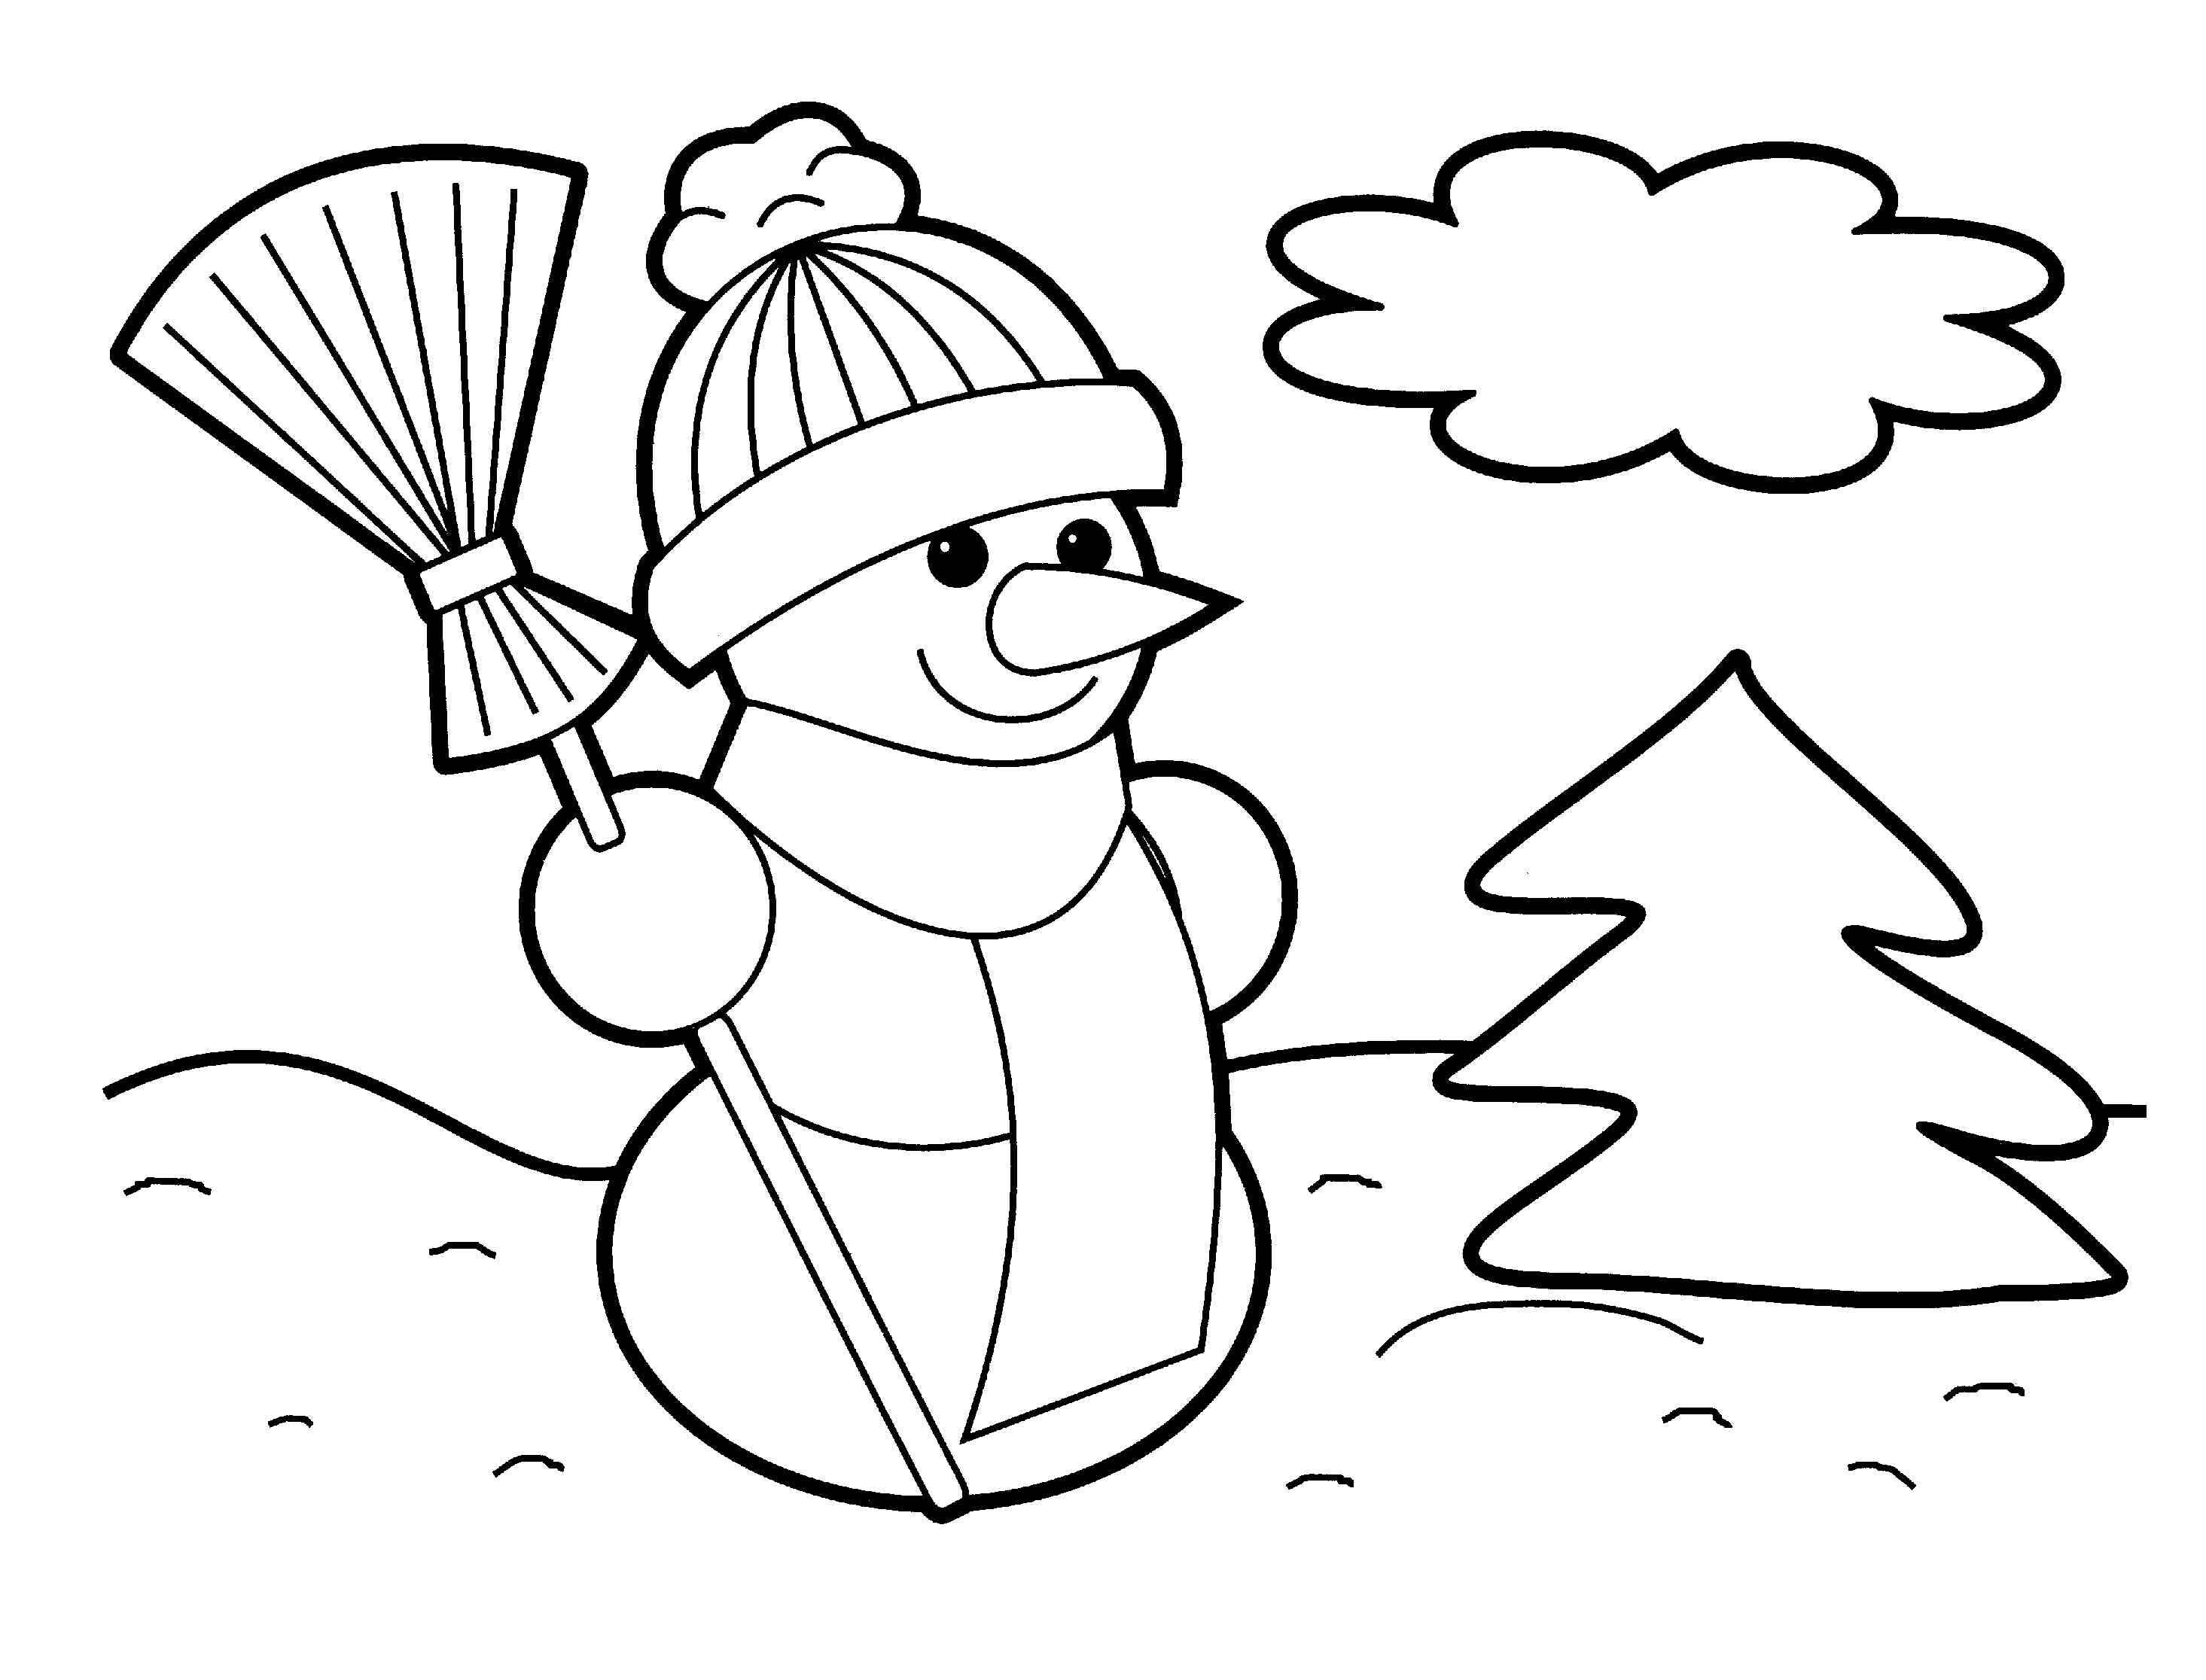 free printable christmas coloring sheets for toddlers christmas coloring pages 1 coloring kids free printable for coloring christmas toddlers sheets